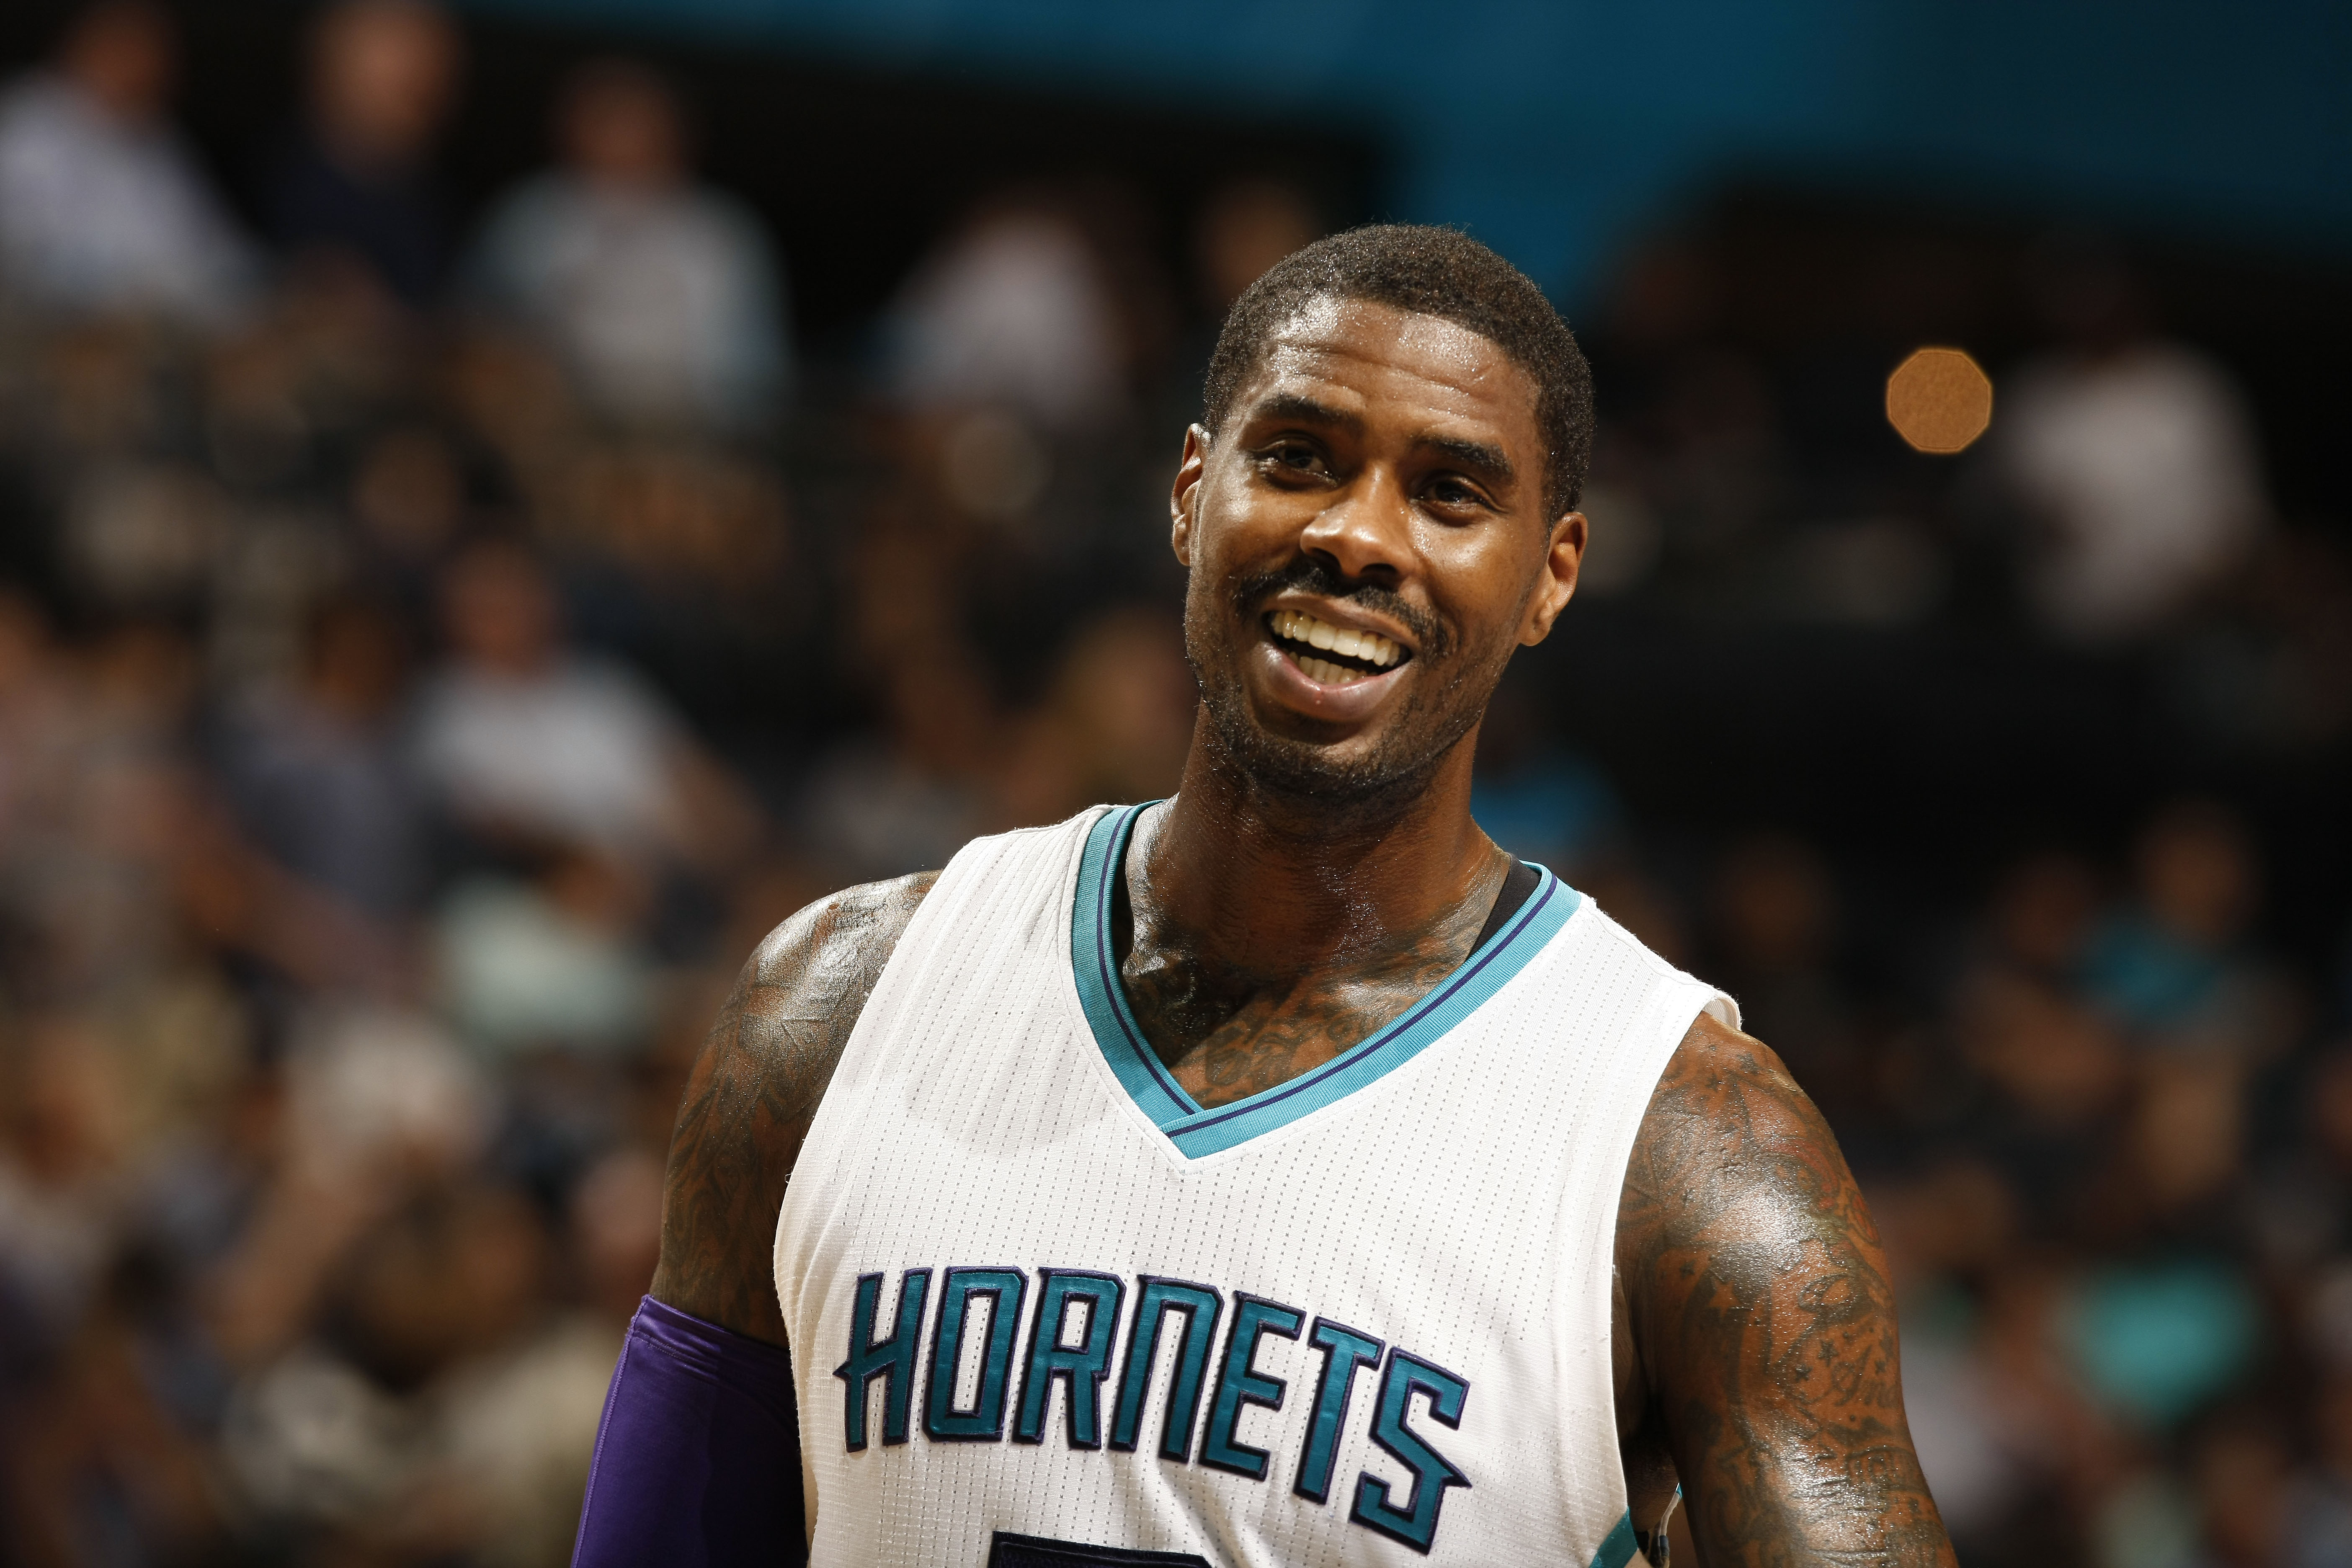 CHARLOTTE, NC - MARCH 11:  Marvin Williams #2 of the Charlotte Hornets is seen during the game against the Detroit Pistons at the Time Warner Cable Arena on March 11, 2016 in Charlotte, North Carolina. (Photo by Kent Smith/NBAE via Getty Images)